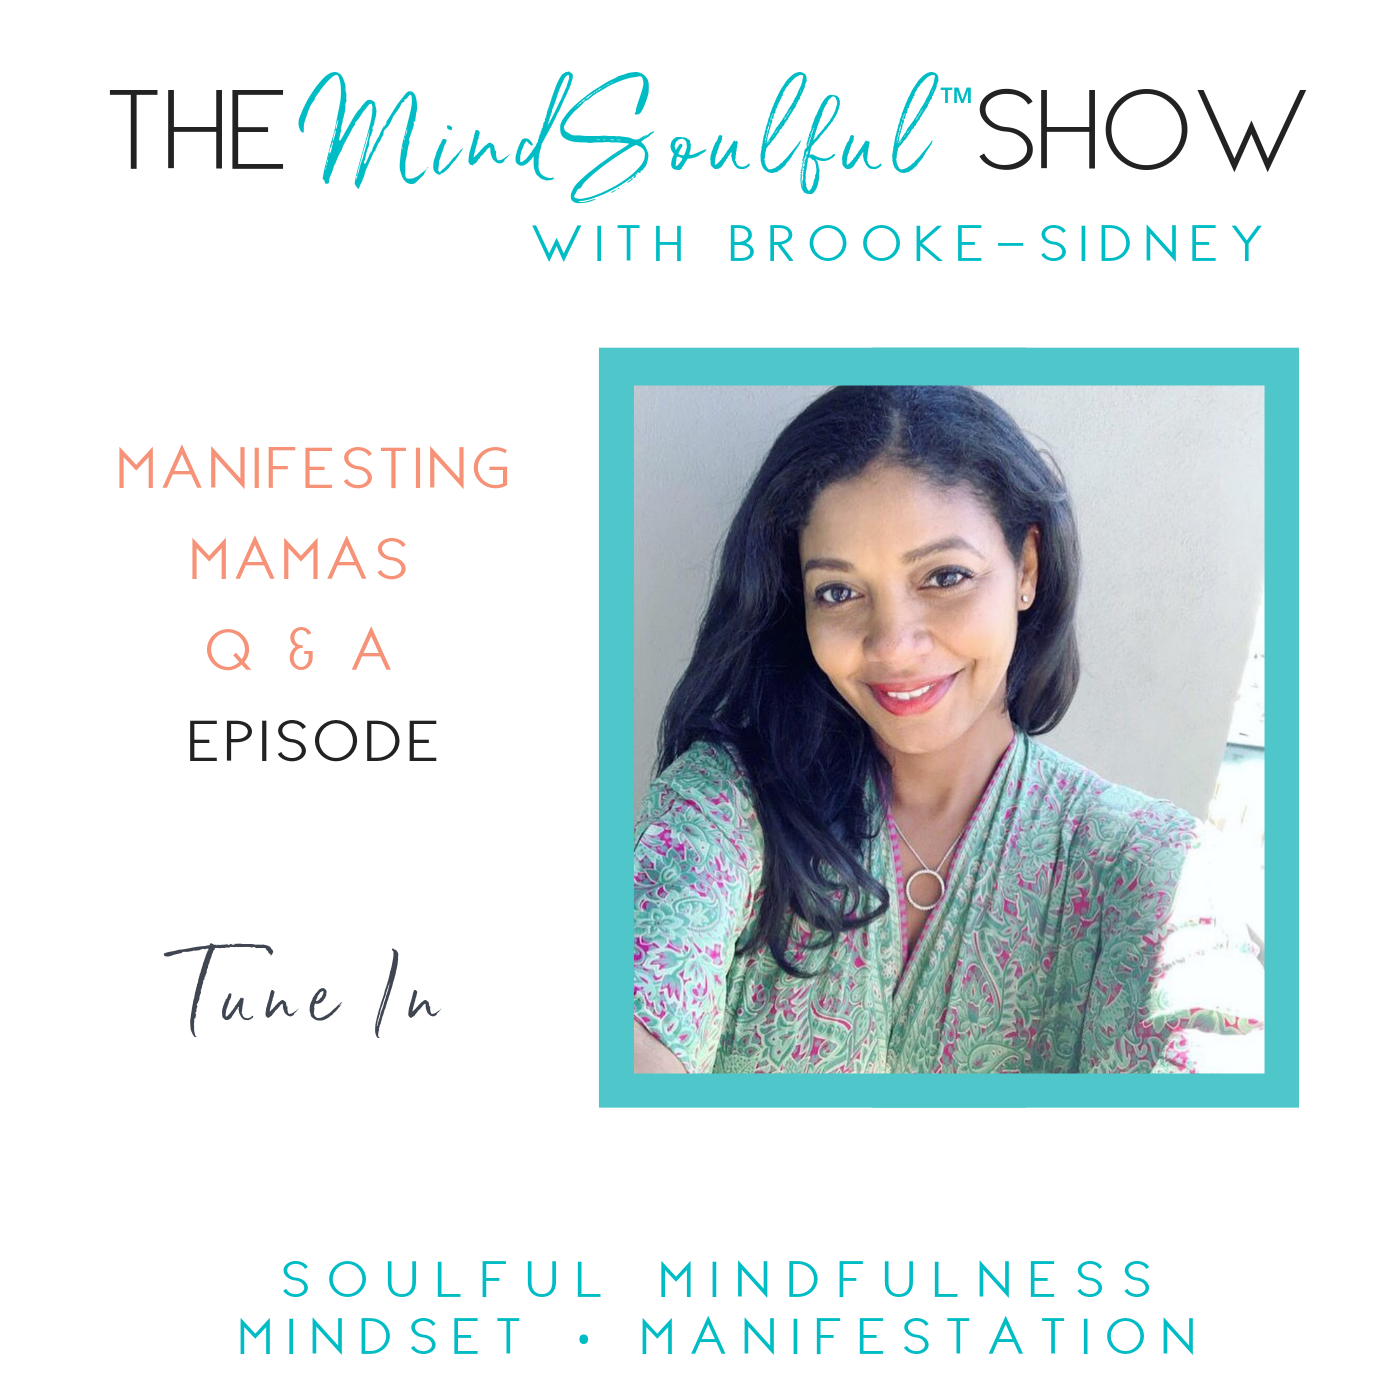 The MindSoulful Show - MANIFESTING MAMAS Q & A.png